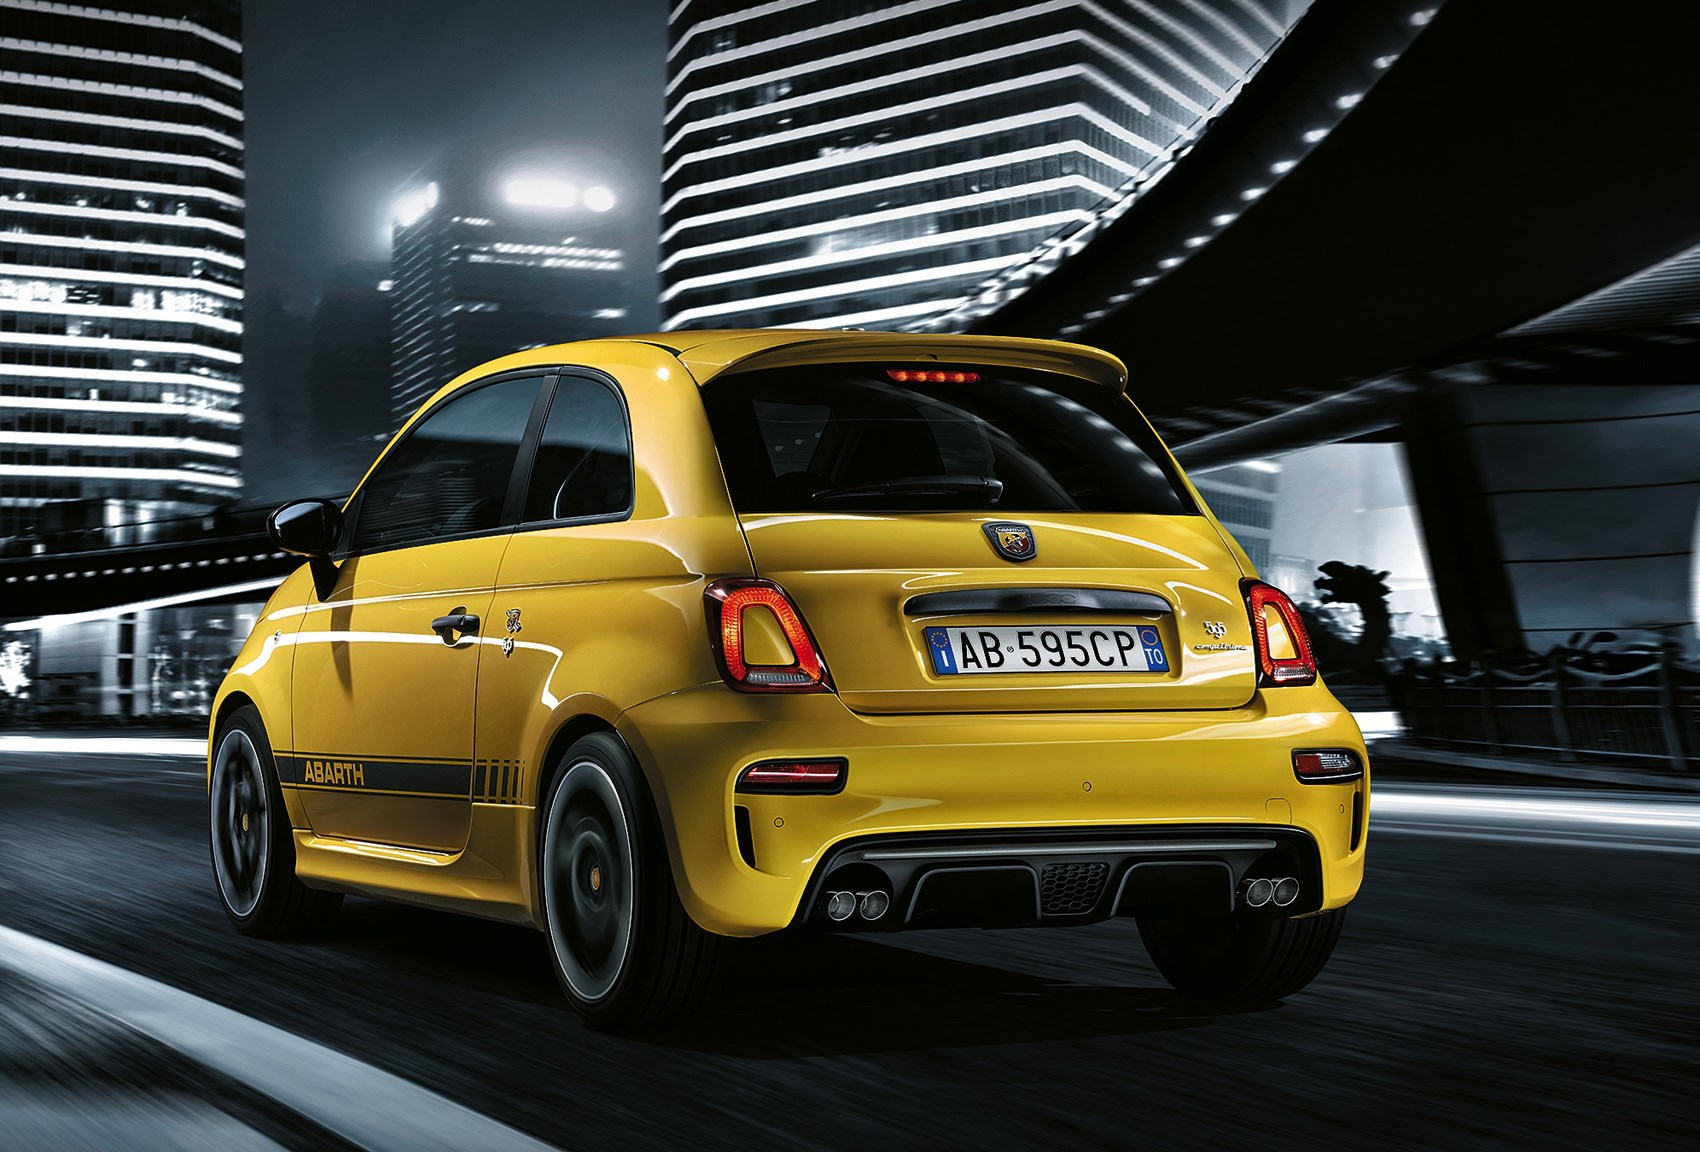 Abarth 595 Hatchback (2012 - ) Photos | Parkers